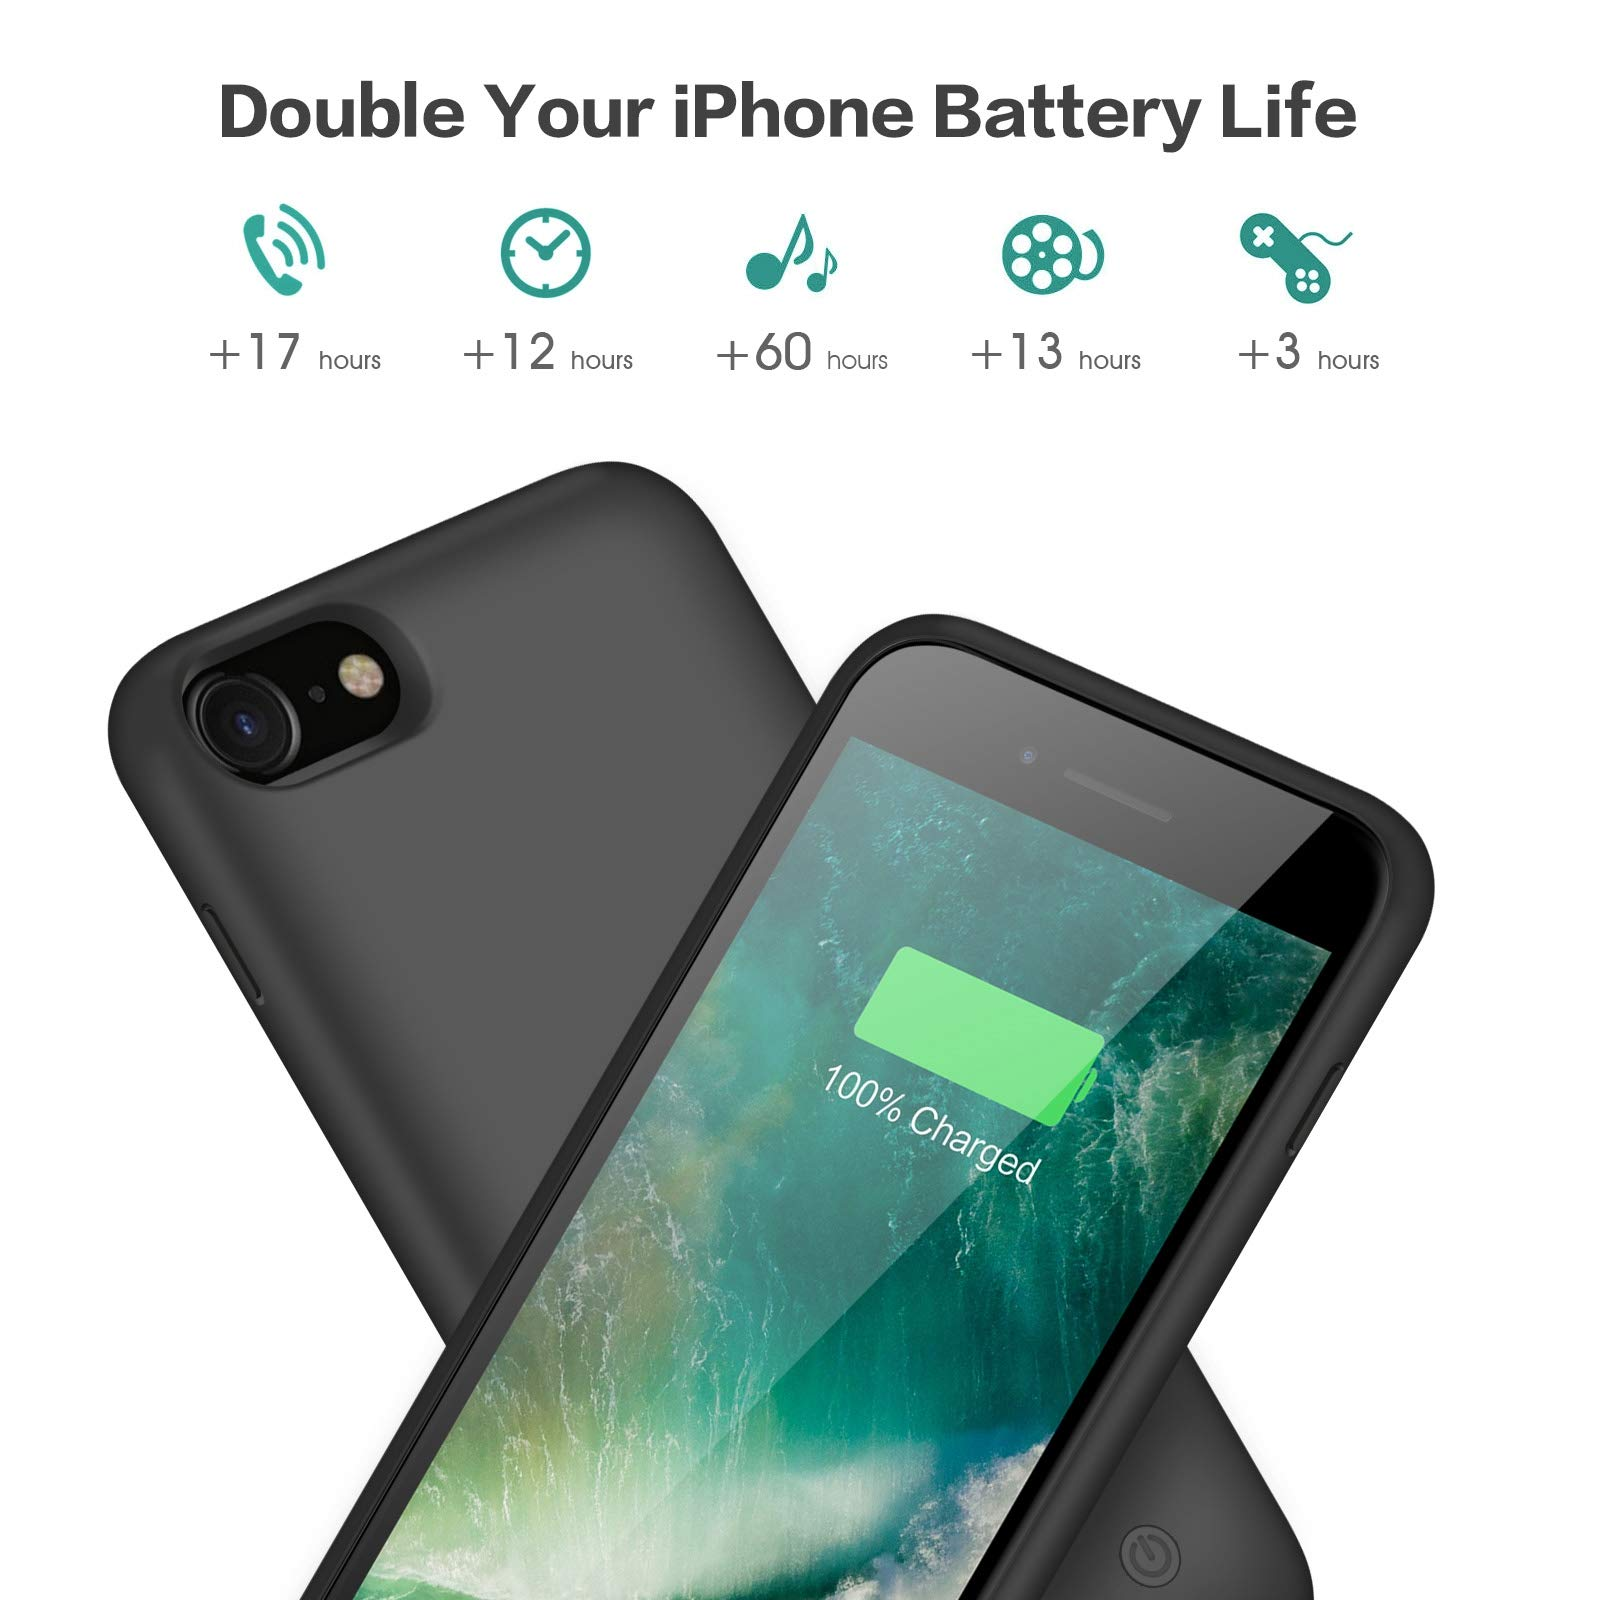 Battery case for iPhone 8/7, Xooparc [6000mah] Upgraded Charging Case Protective Portable Charger Case Rechargeable Extended Battery Pack for Apple iPhone 7/8(4.7') Backup Power Bank Cover (Black) by Xooparc (Image #4)